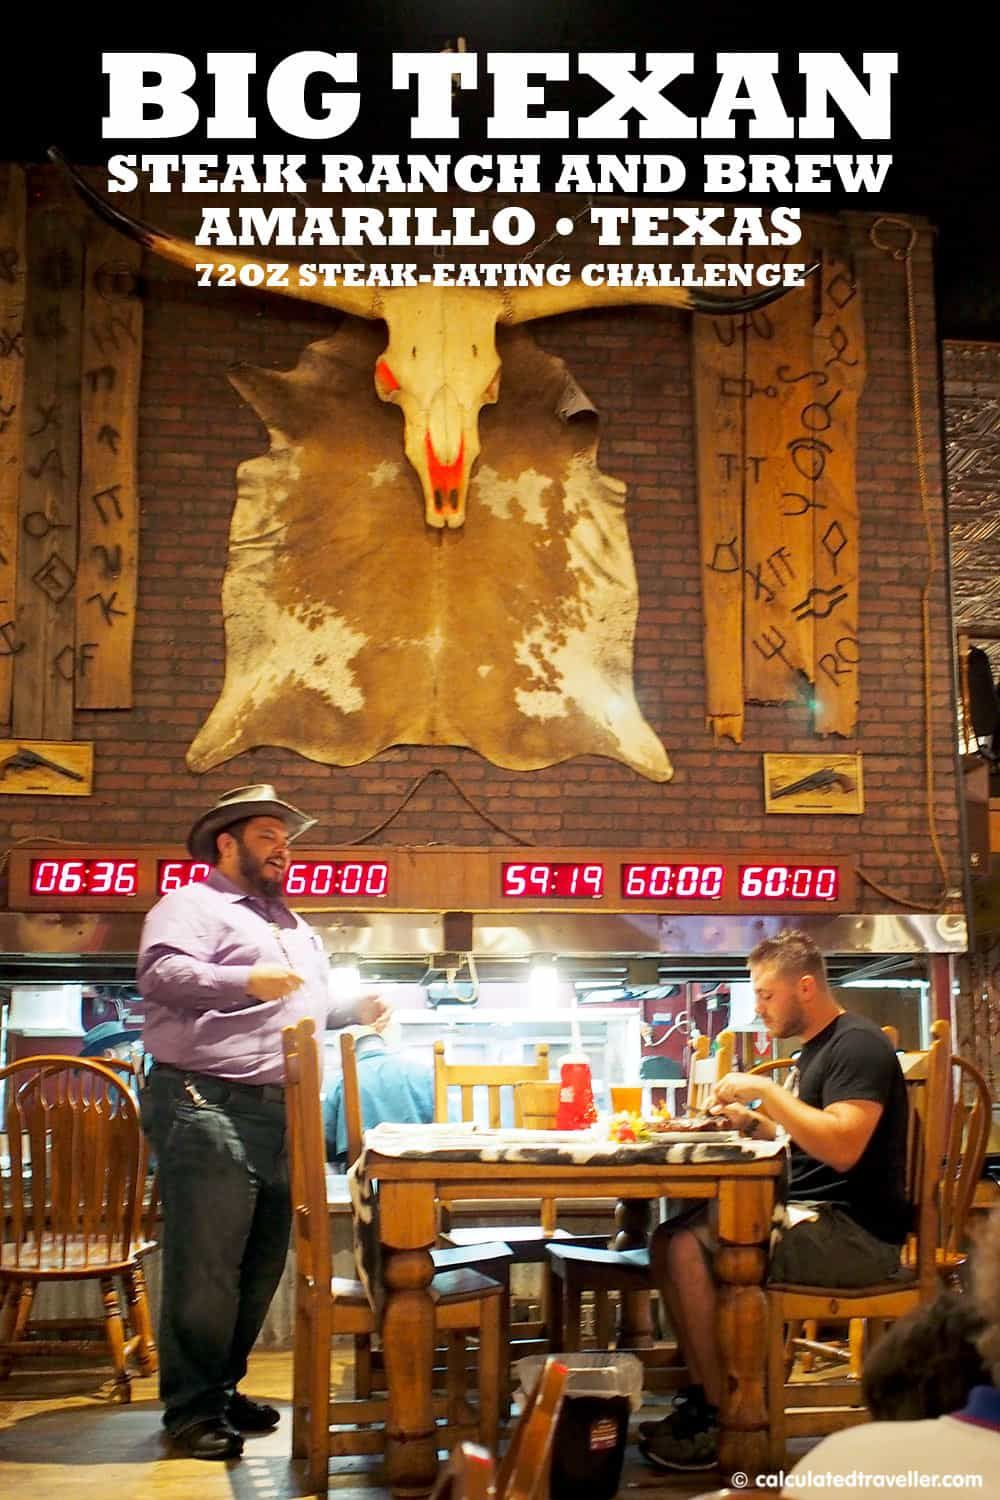 Eating Big At The Big Texan Steak Ranch And Brew In Amarillo